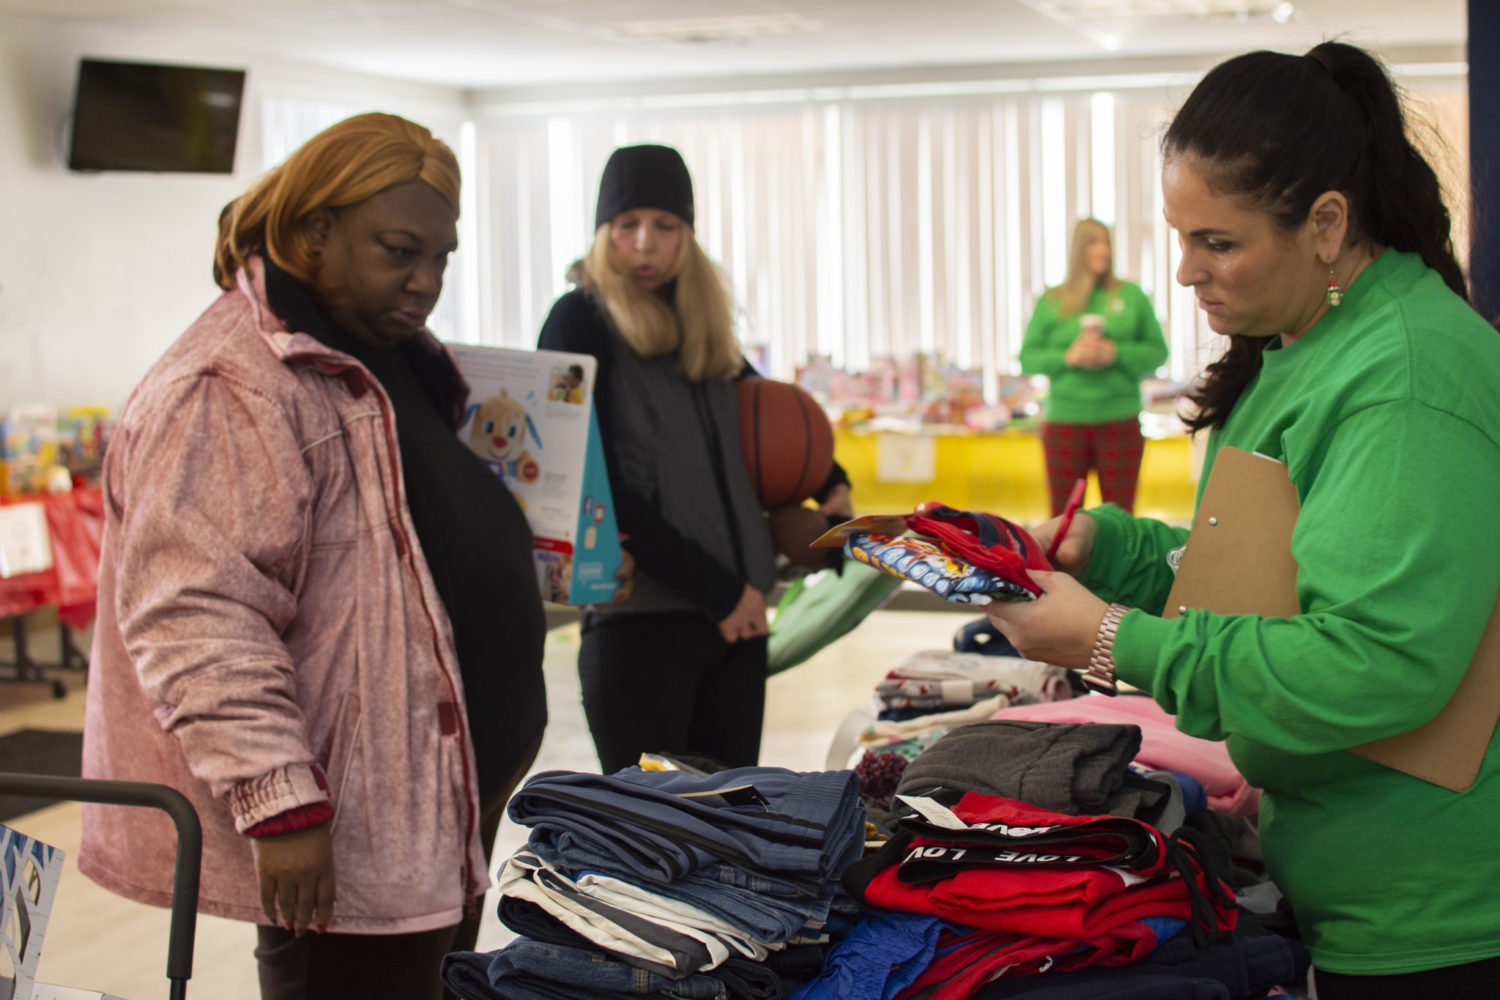 An Adopt a Family volunteer helps a woman shop for clothes.